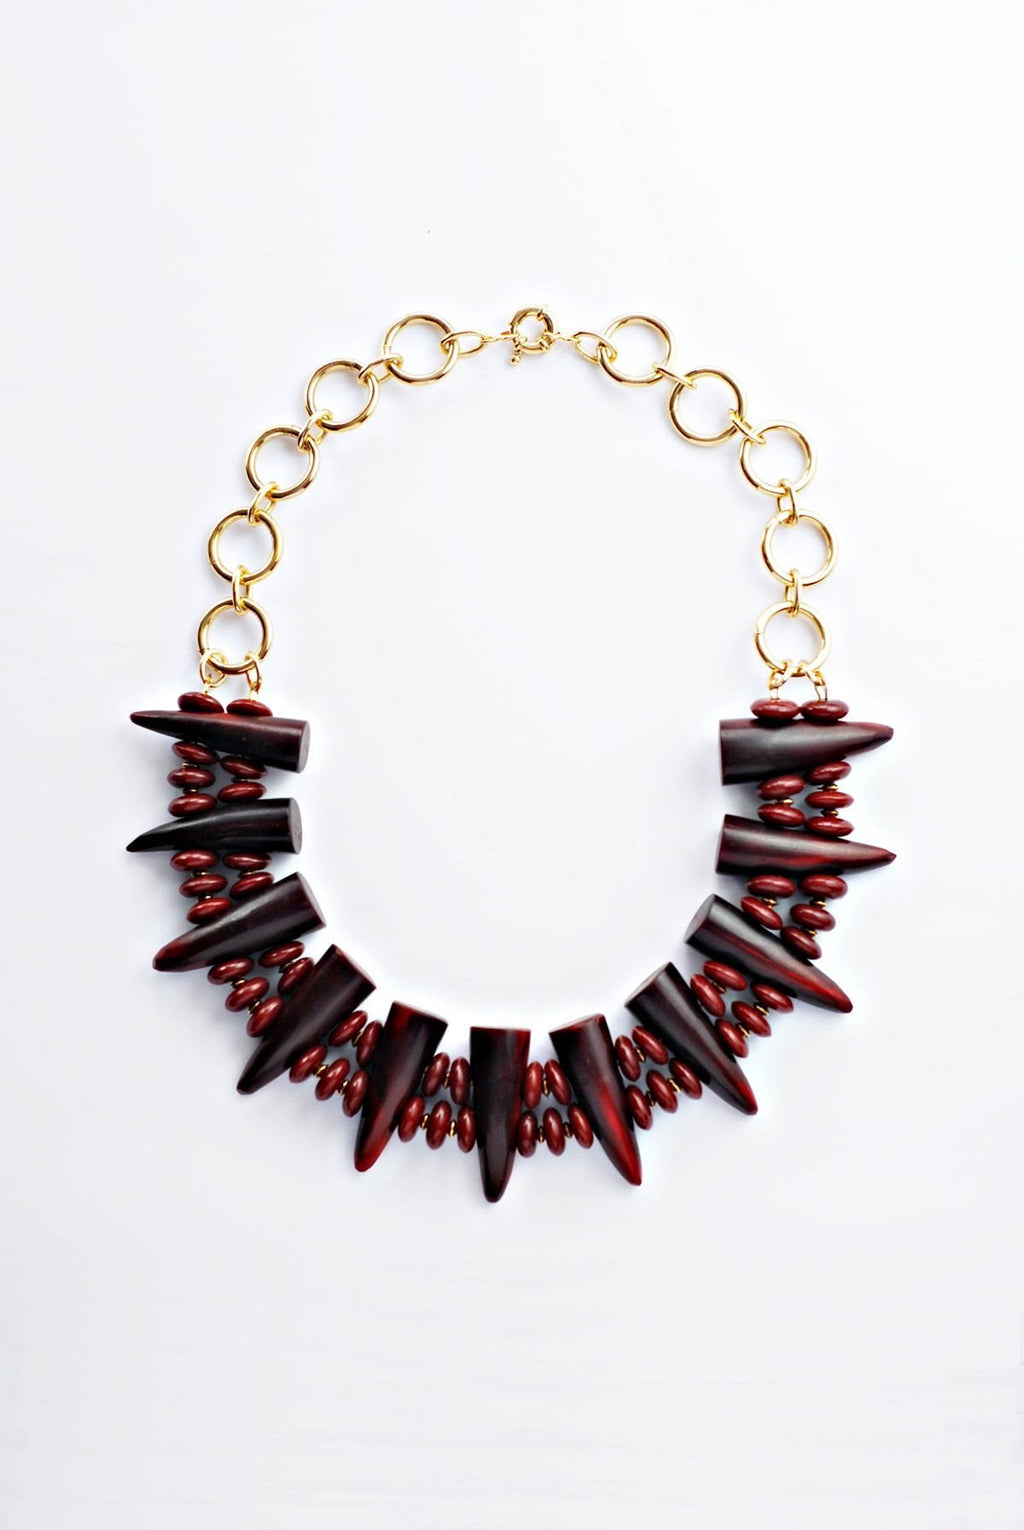 Burgundy Horns Necklace - Boutique Minimaliste